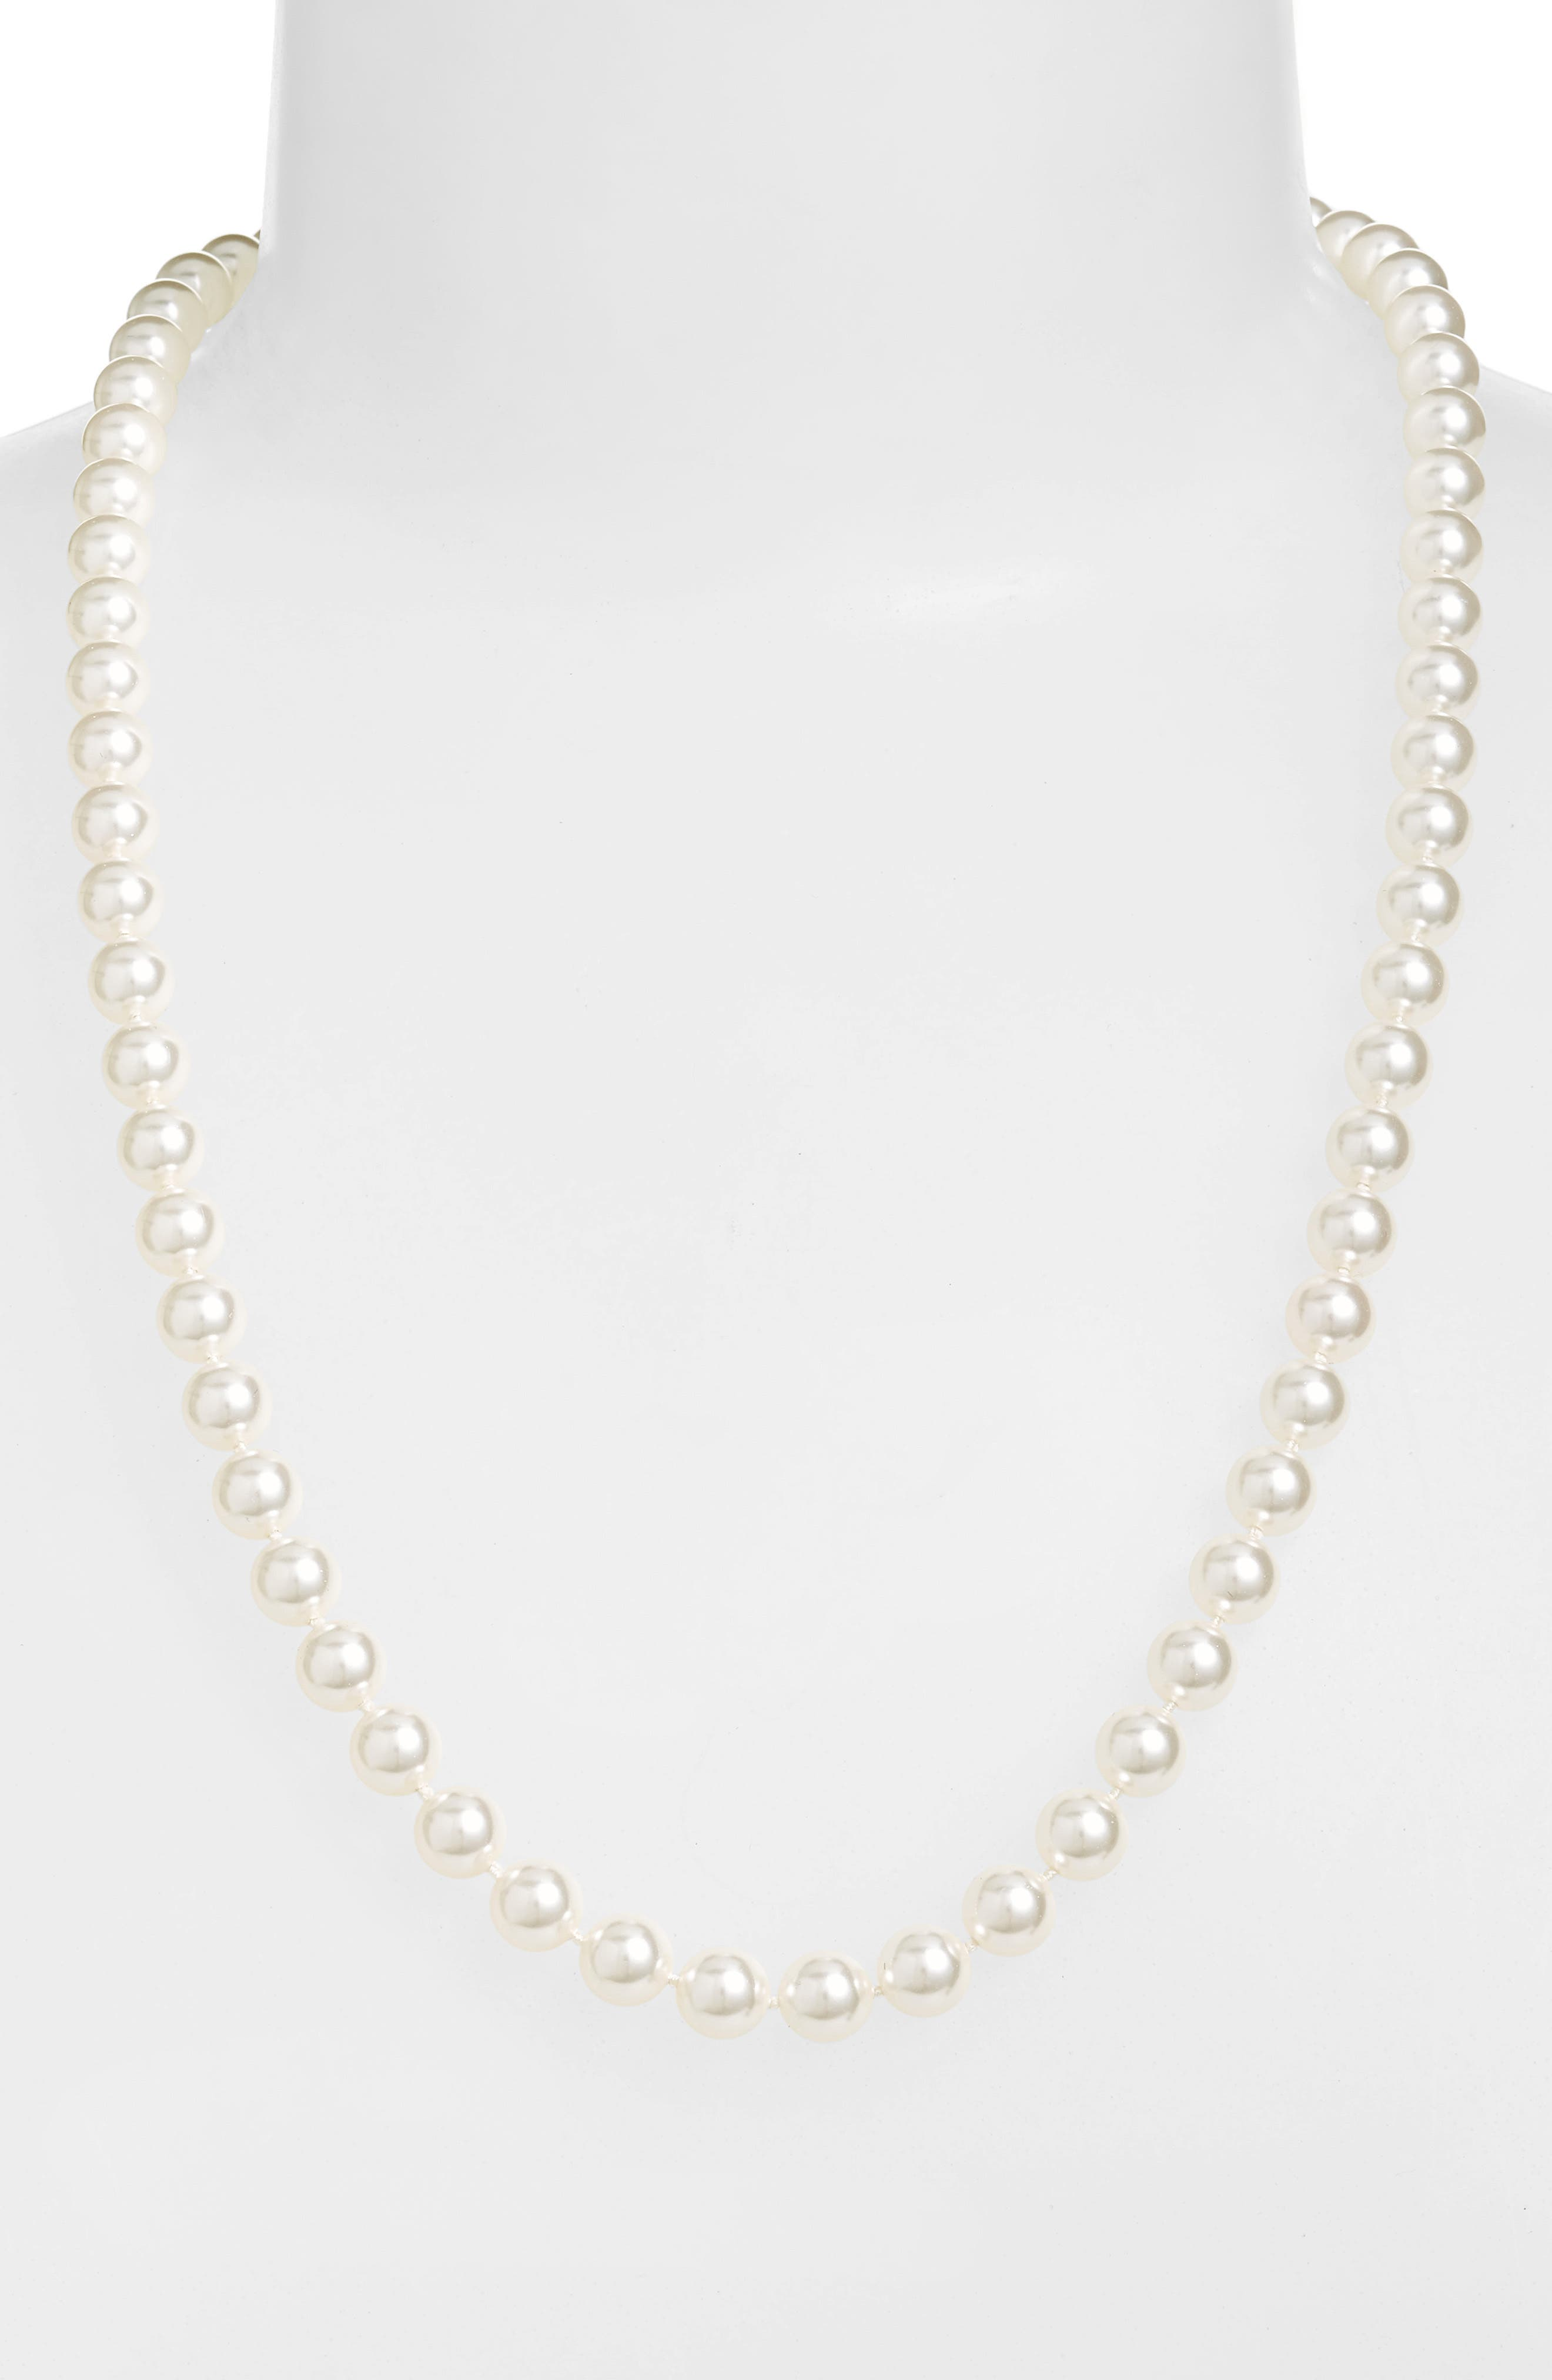 24-Inch Glass Pearl Strand Necklace,                             Main thumbnail 1, color,                             White Pearl